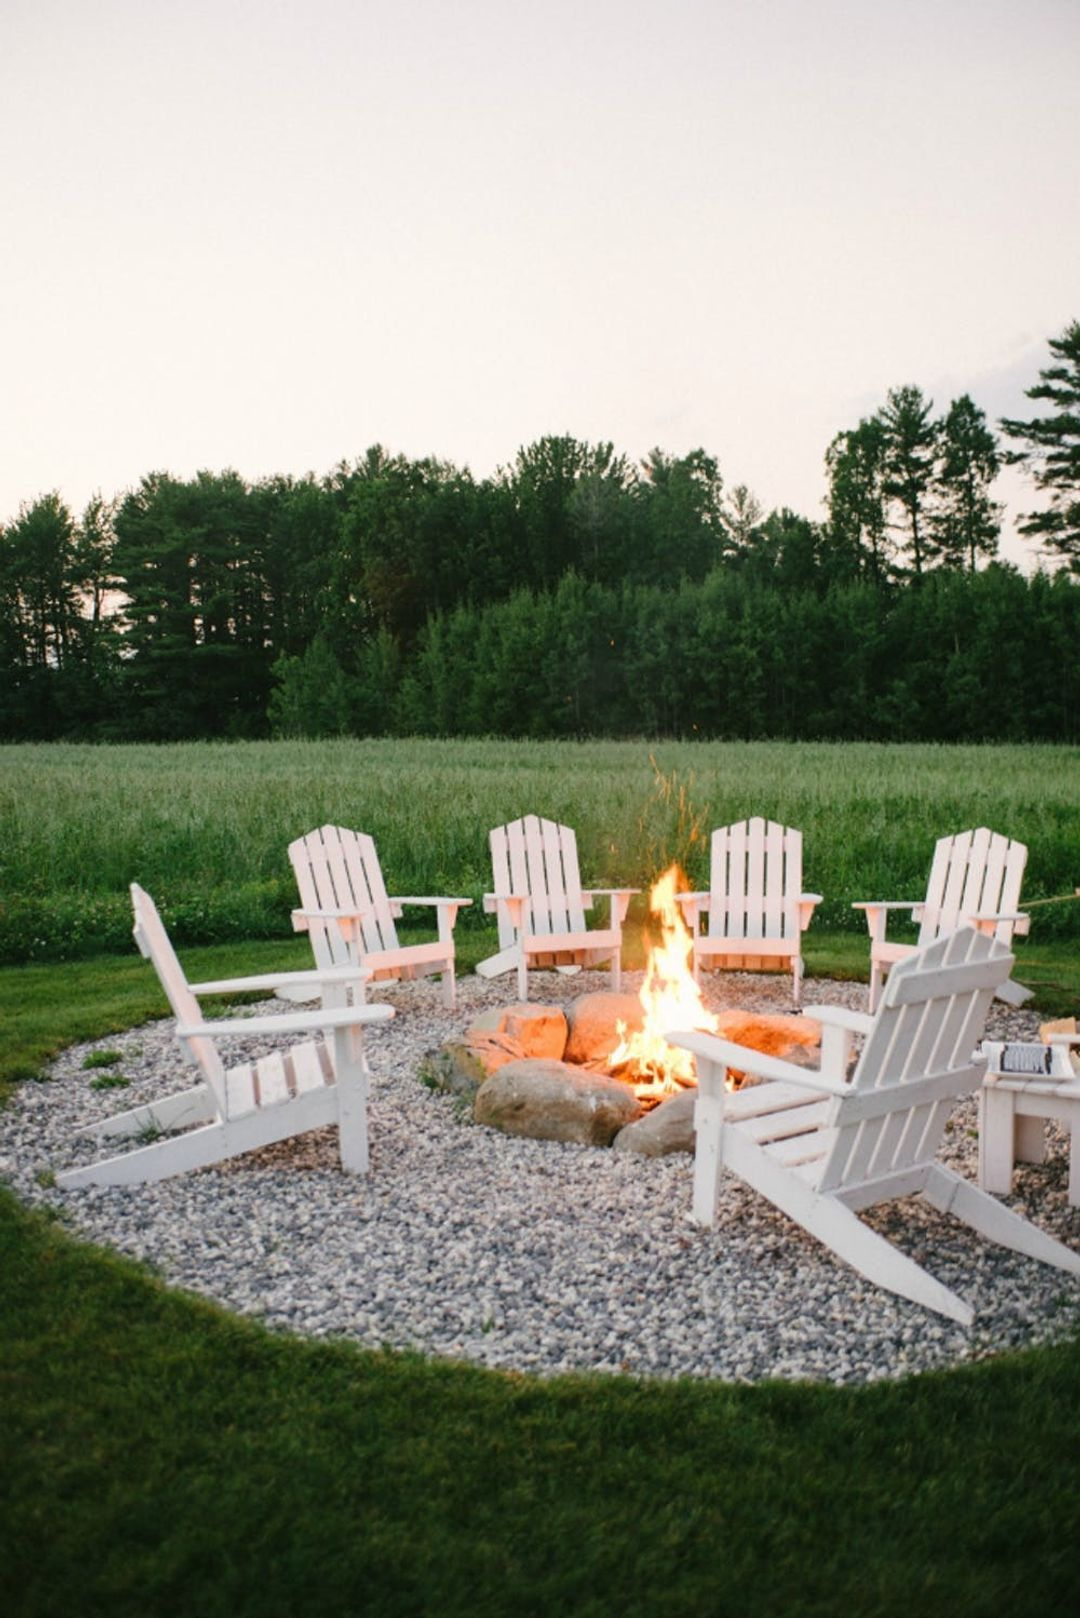 The 15 Best Backyard Entertaining Ideas According To Pinterest Outdoor Fire Pit Seating Plans